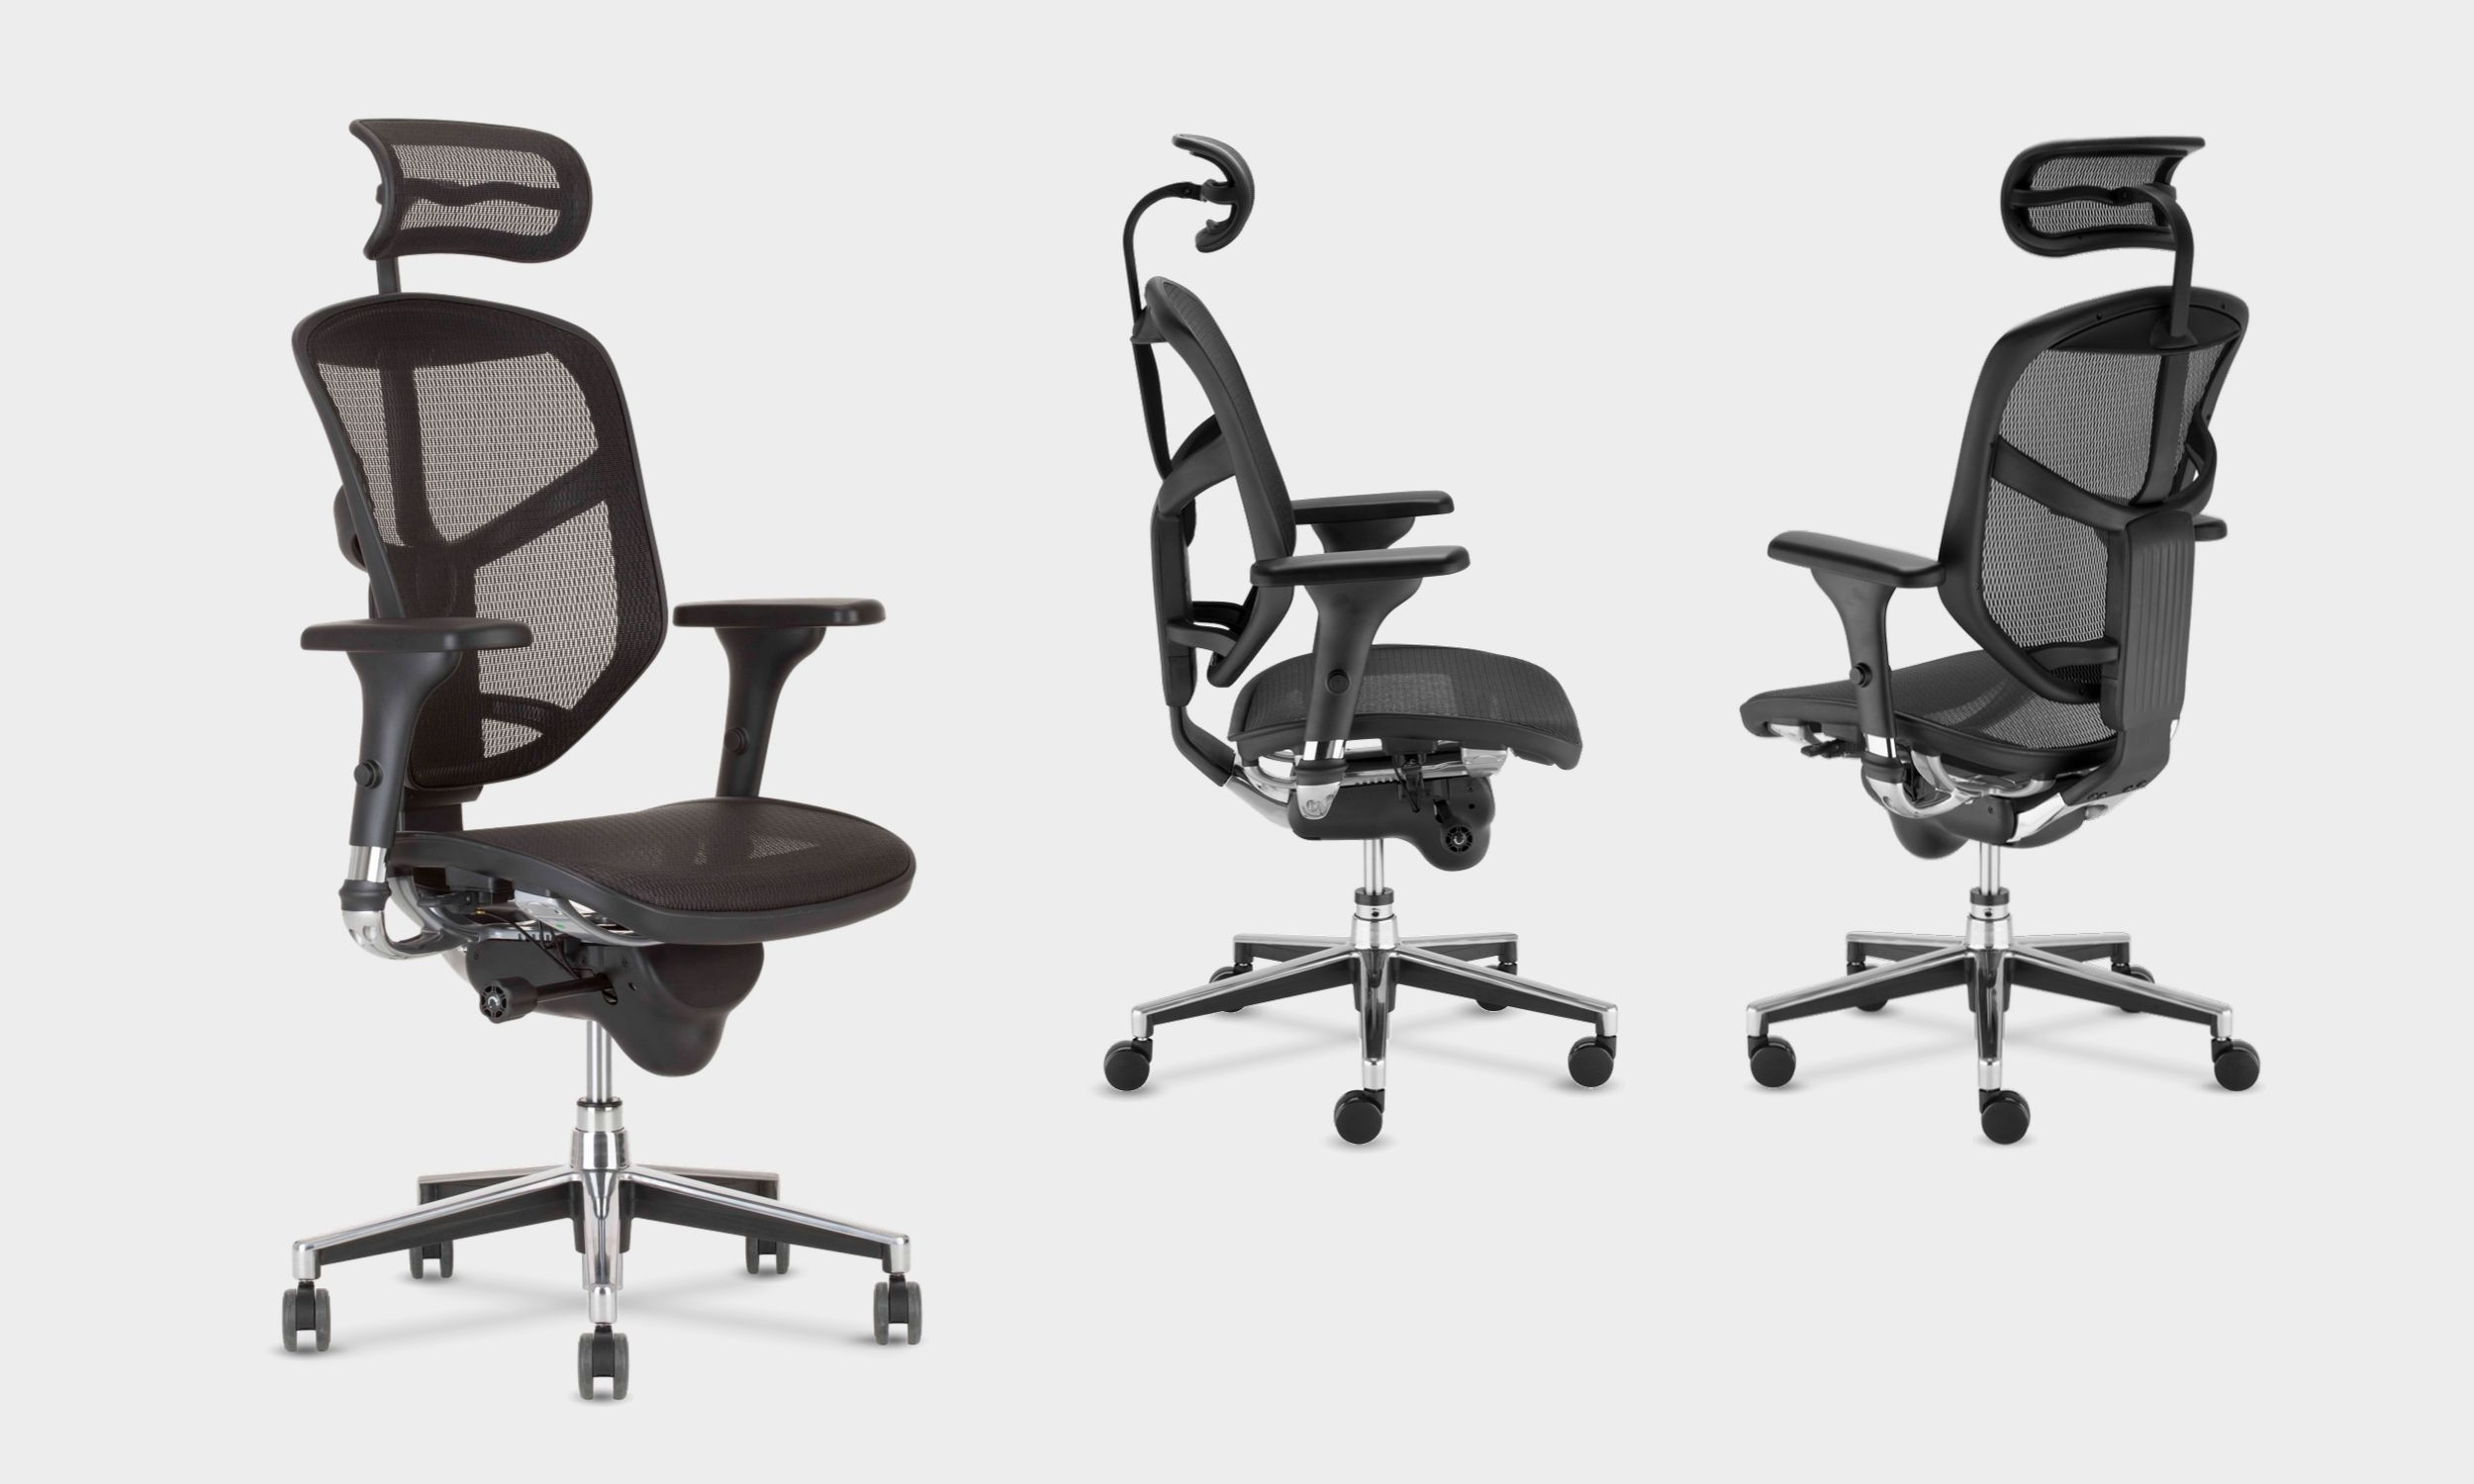 office-chairs_10-6_Master-1.jpg